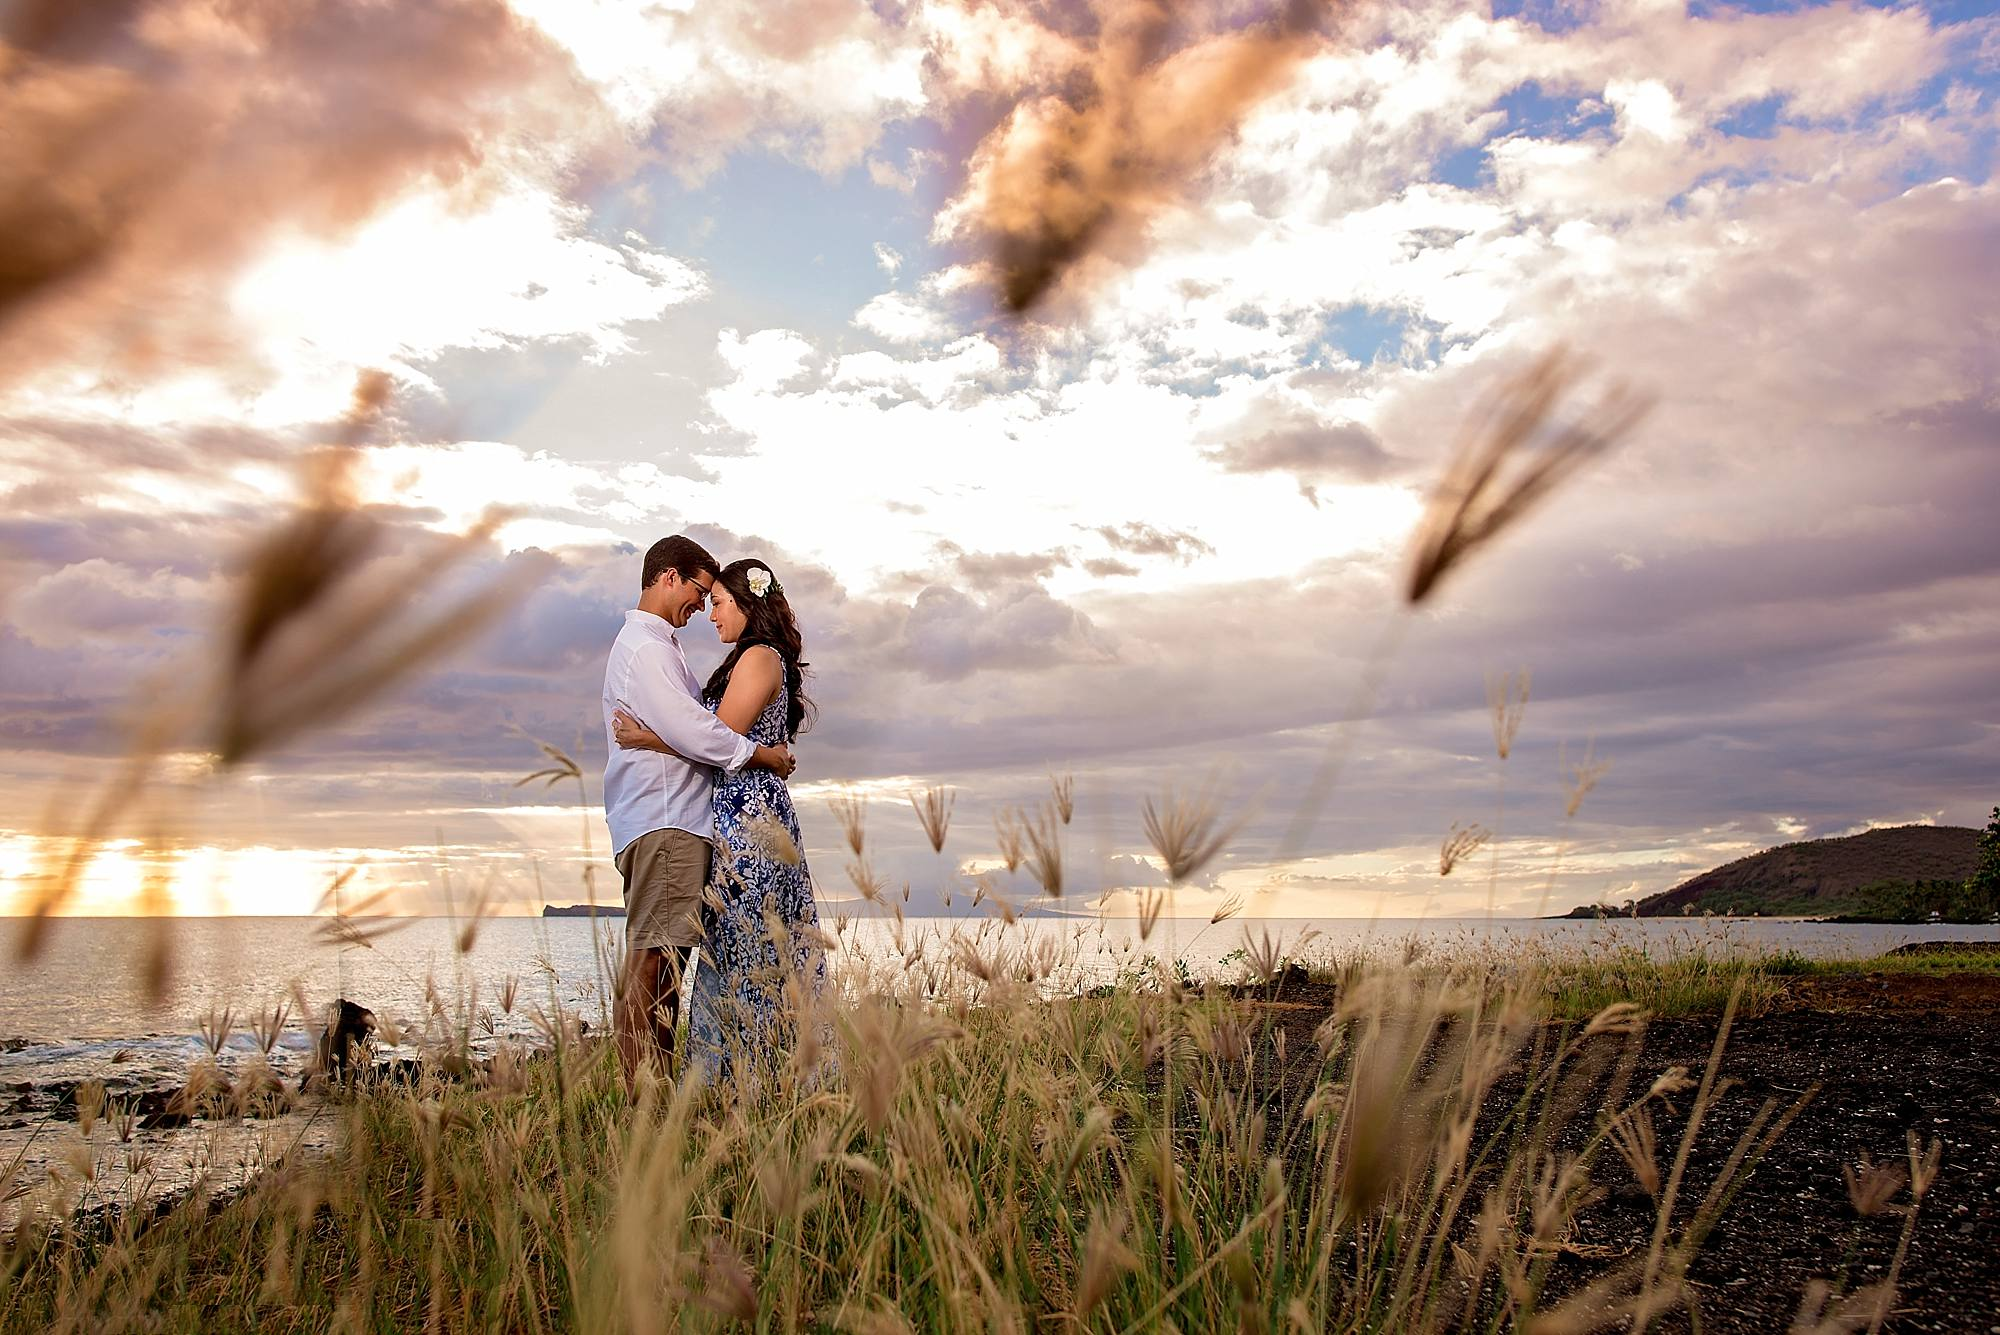 magmod photo of couple in field